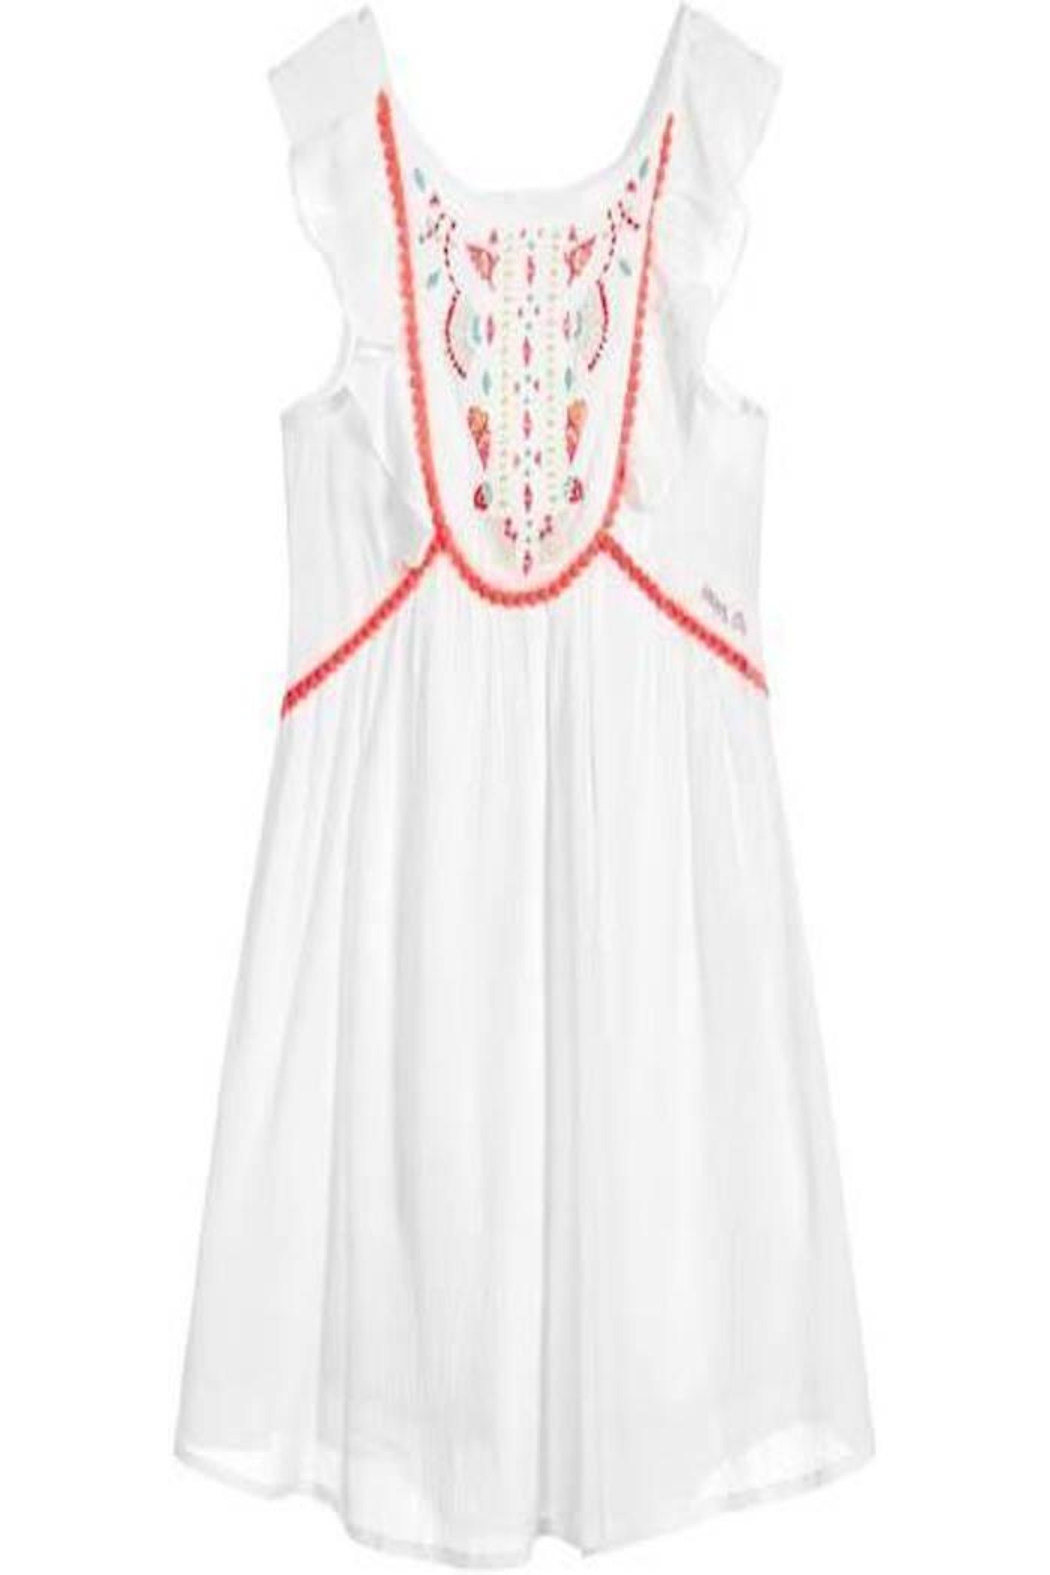 IKKS Summer Embroidered Dress - Main Image